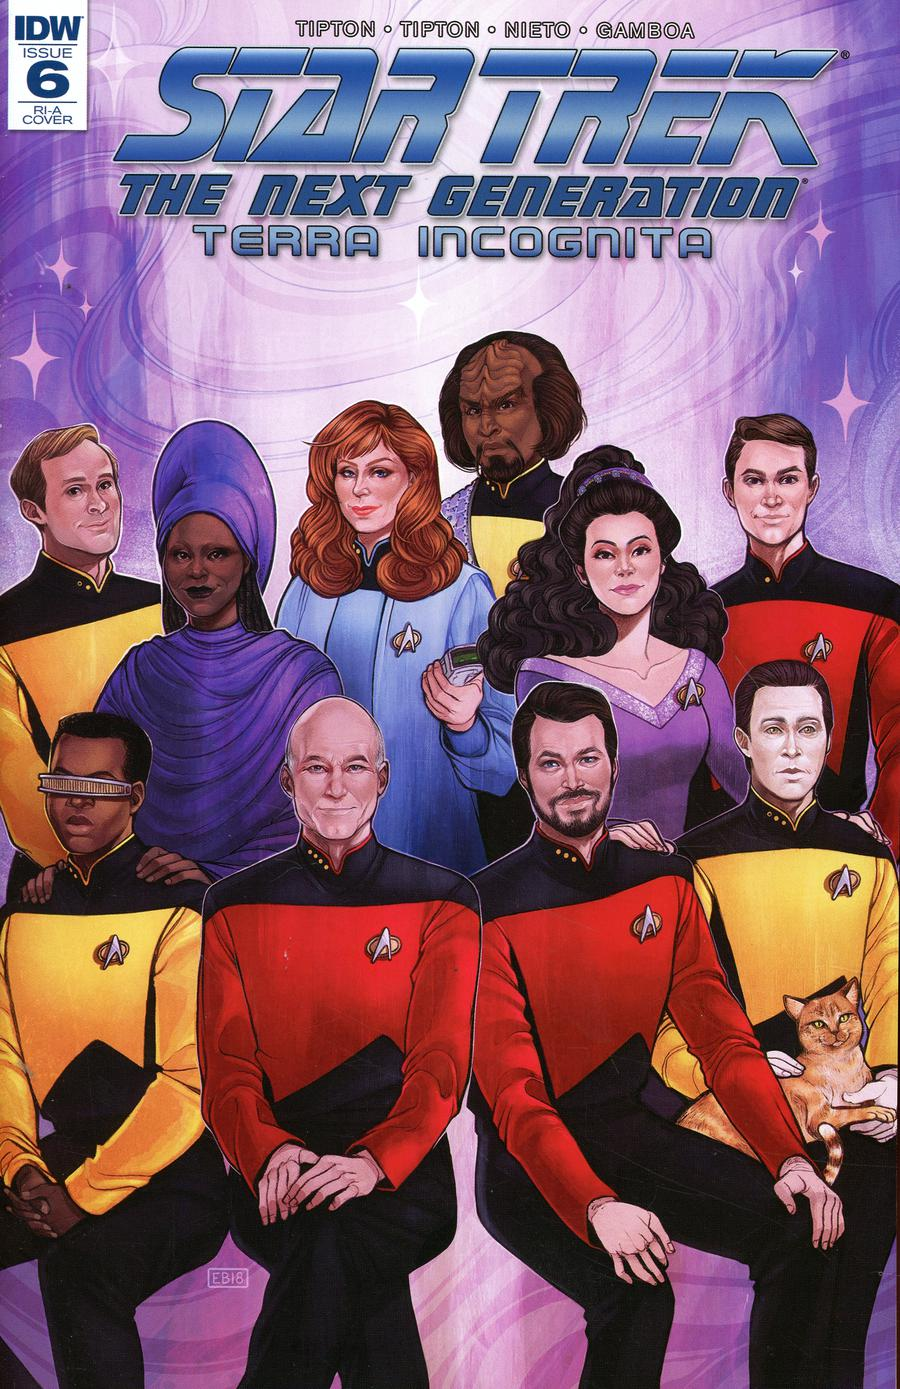 Star Trek The Next Generation Terra Incognita #6 Cover C Incentive Elizabeth Beals Variant Cover